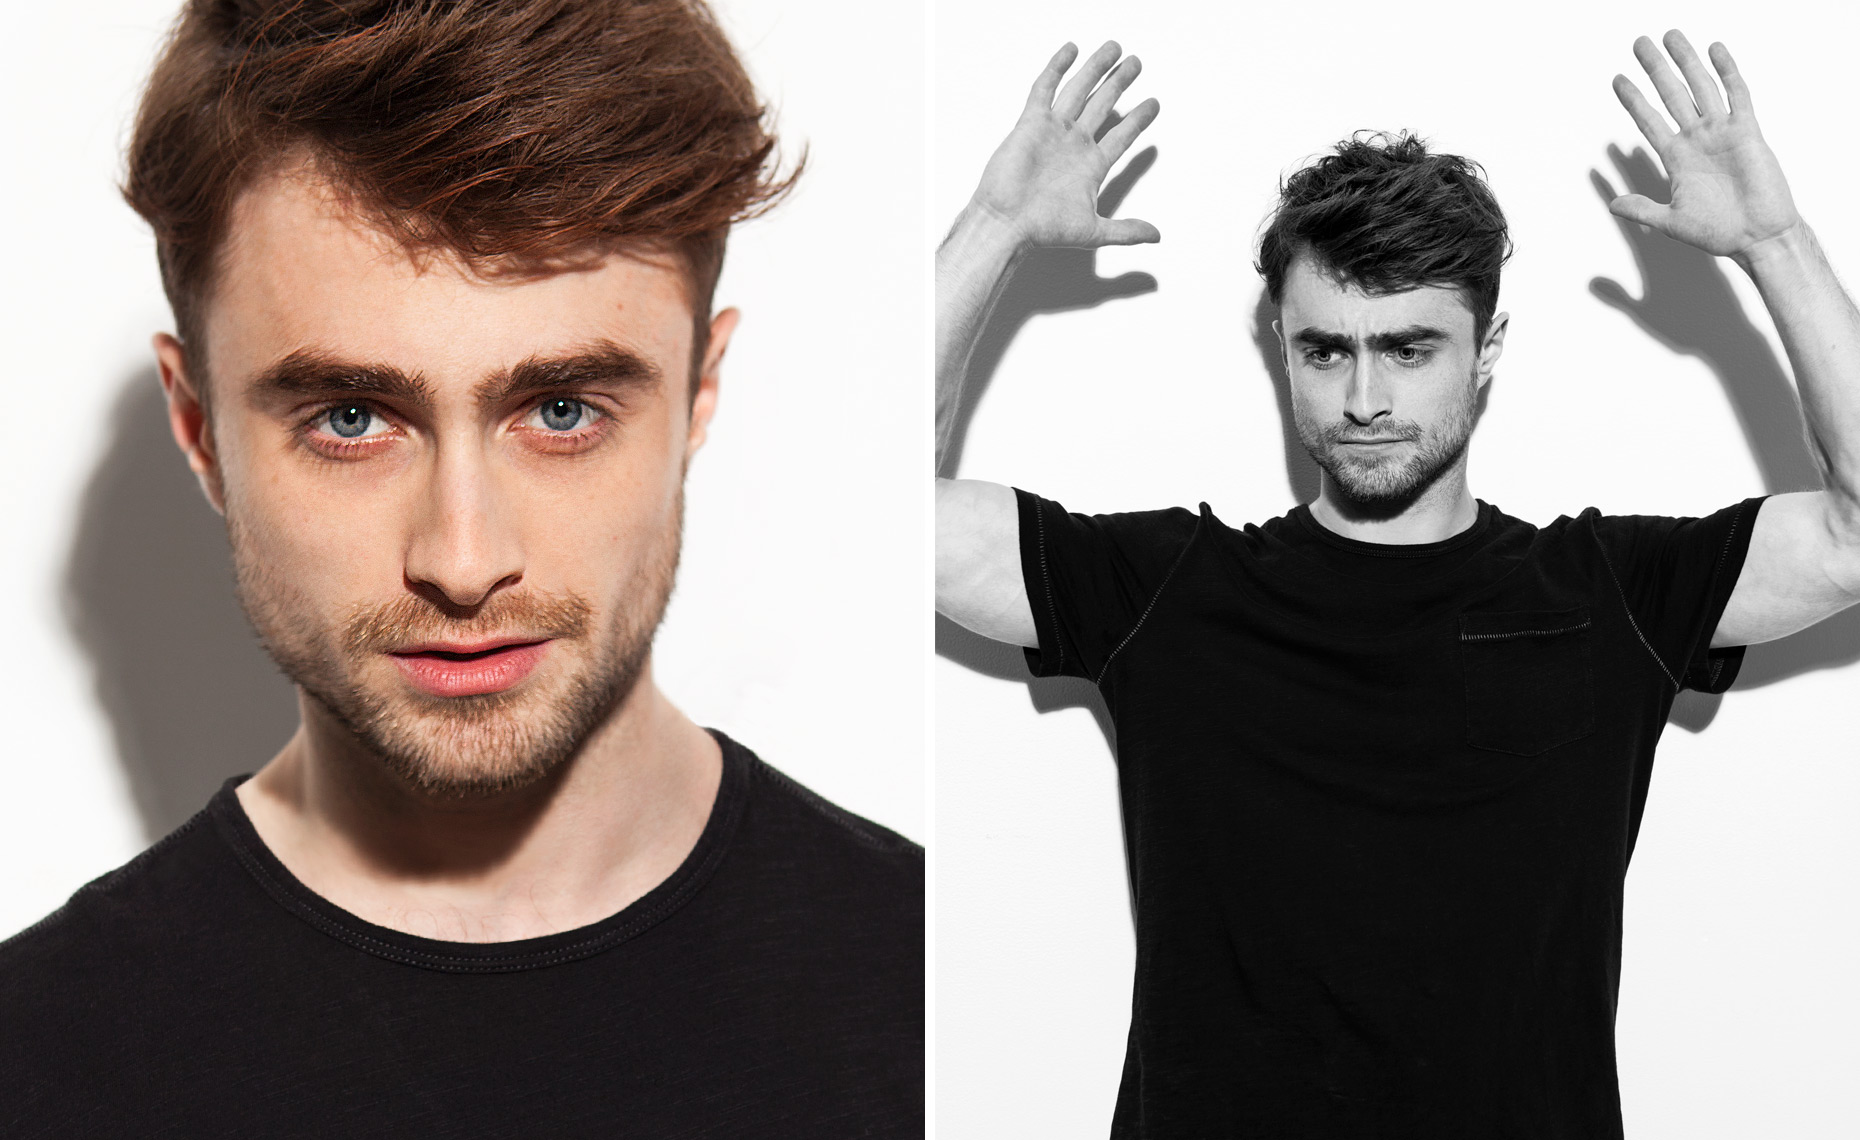 Daniel Radcliffe © Dale May